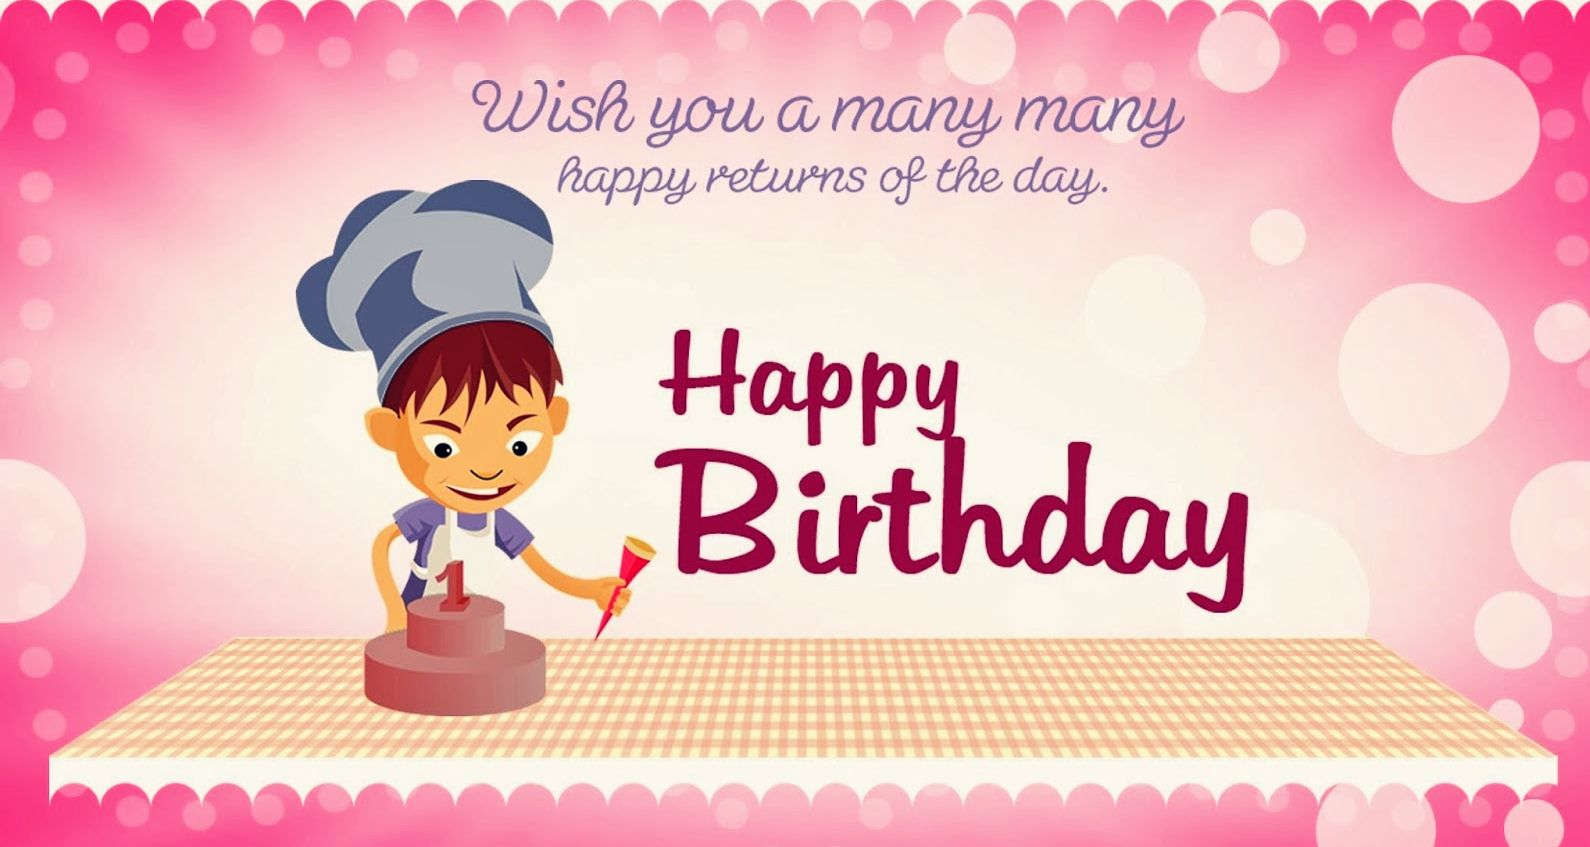 Happy birthday wishes message for a best brother really good life happy birthday wishes message for a best brother m4hsunfo